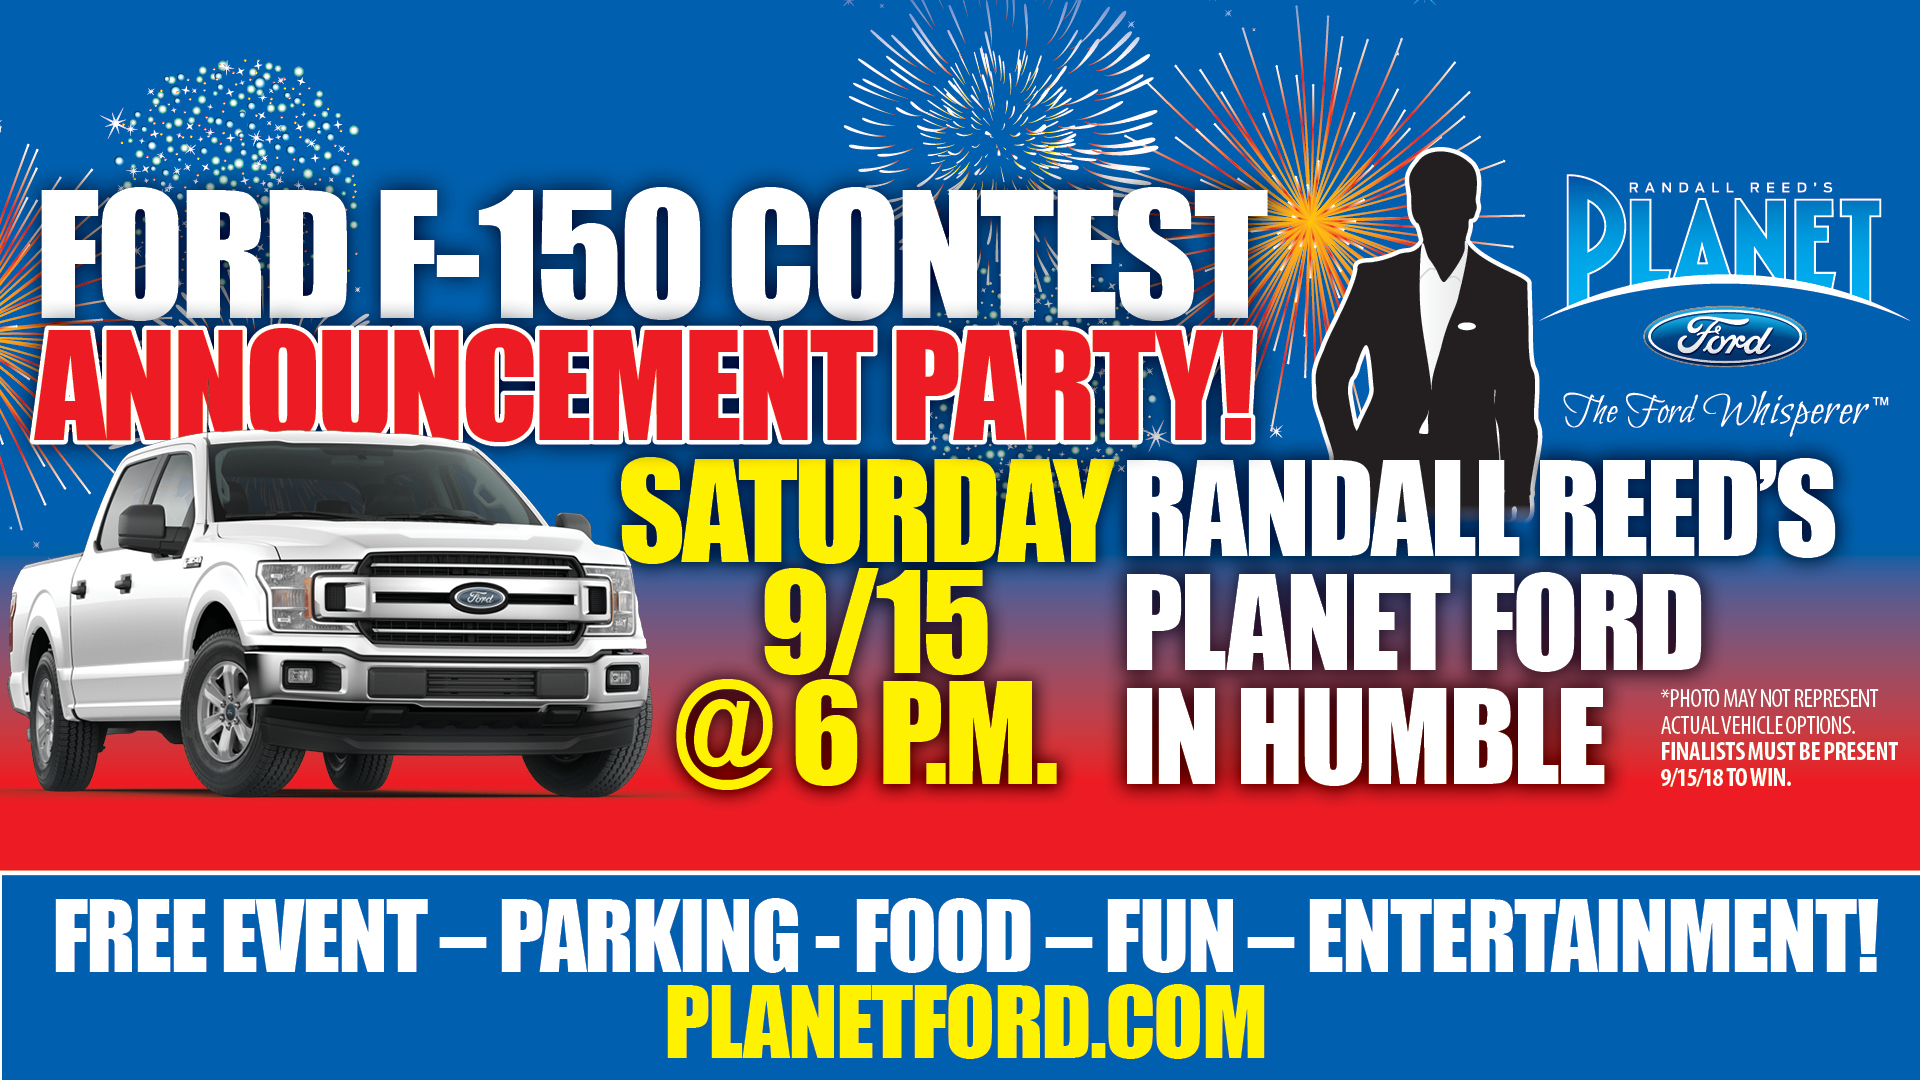 Planet Ford 59 >> You Re Invited Come Celebrate At Planet Ford In Humbleplanet Ford 59